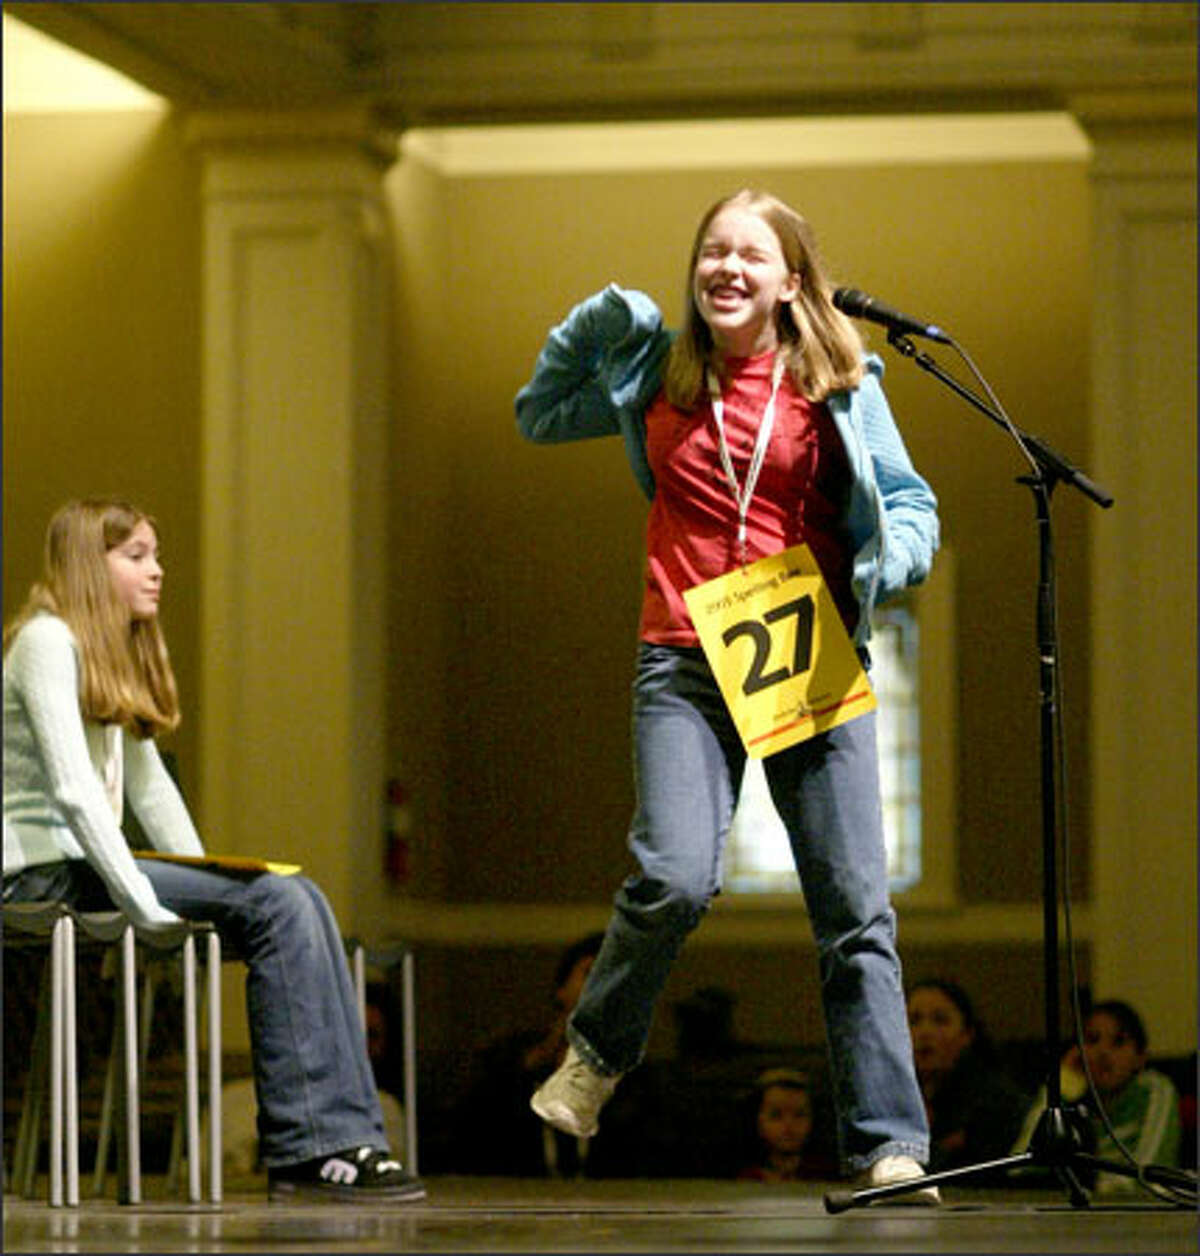 Seventh-grader Claire Nieman of Bothell reacts after winning the spelling bee for King and Snohomish counties for the second year in a row by spelling